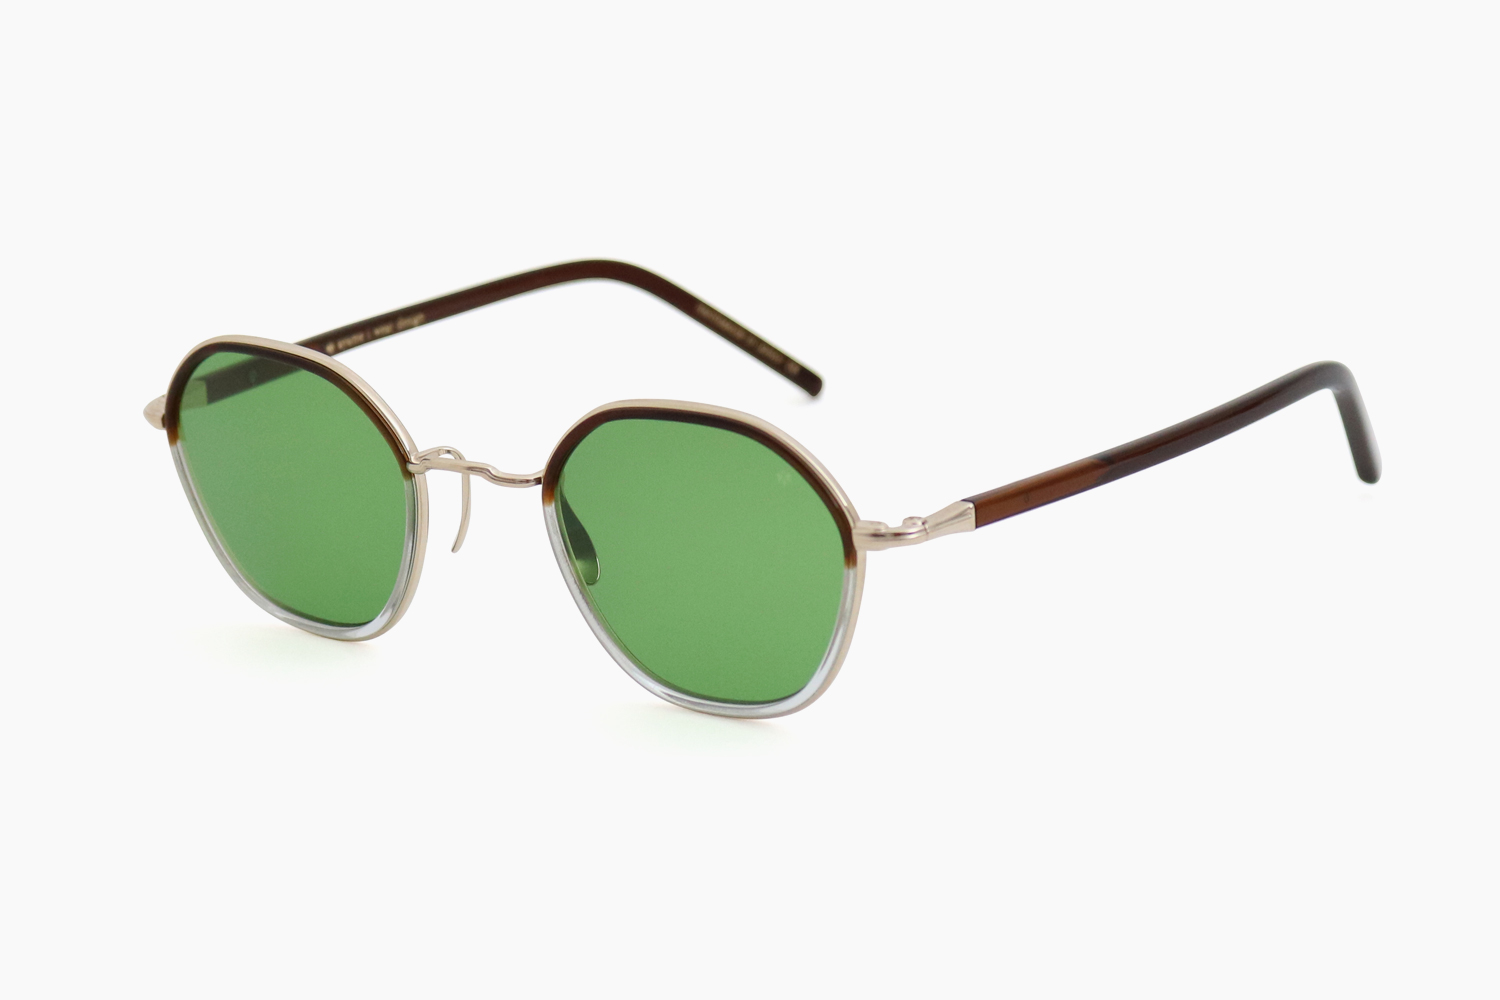 HEX SG - BRC|SUNGLASSES COLLECTION - 21SS